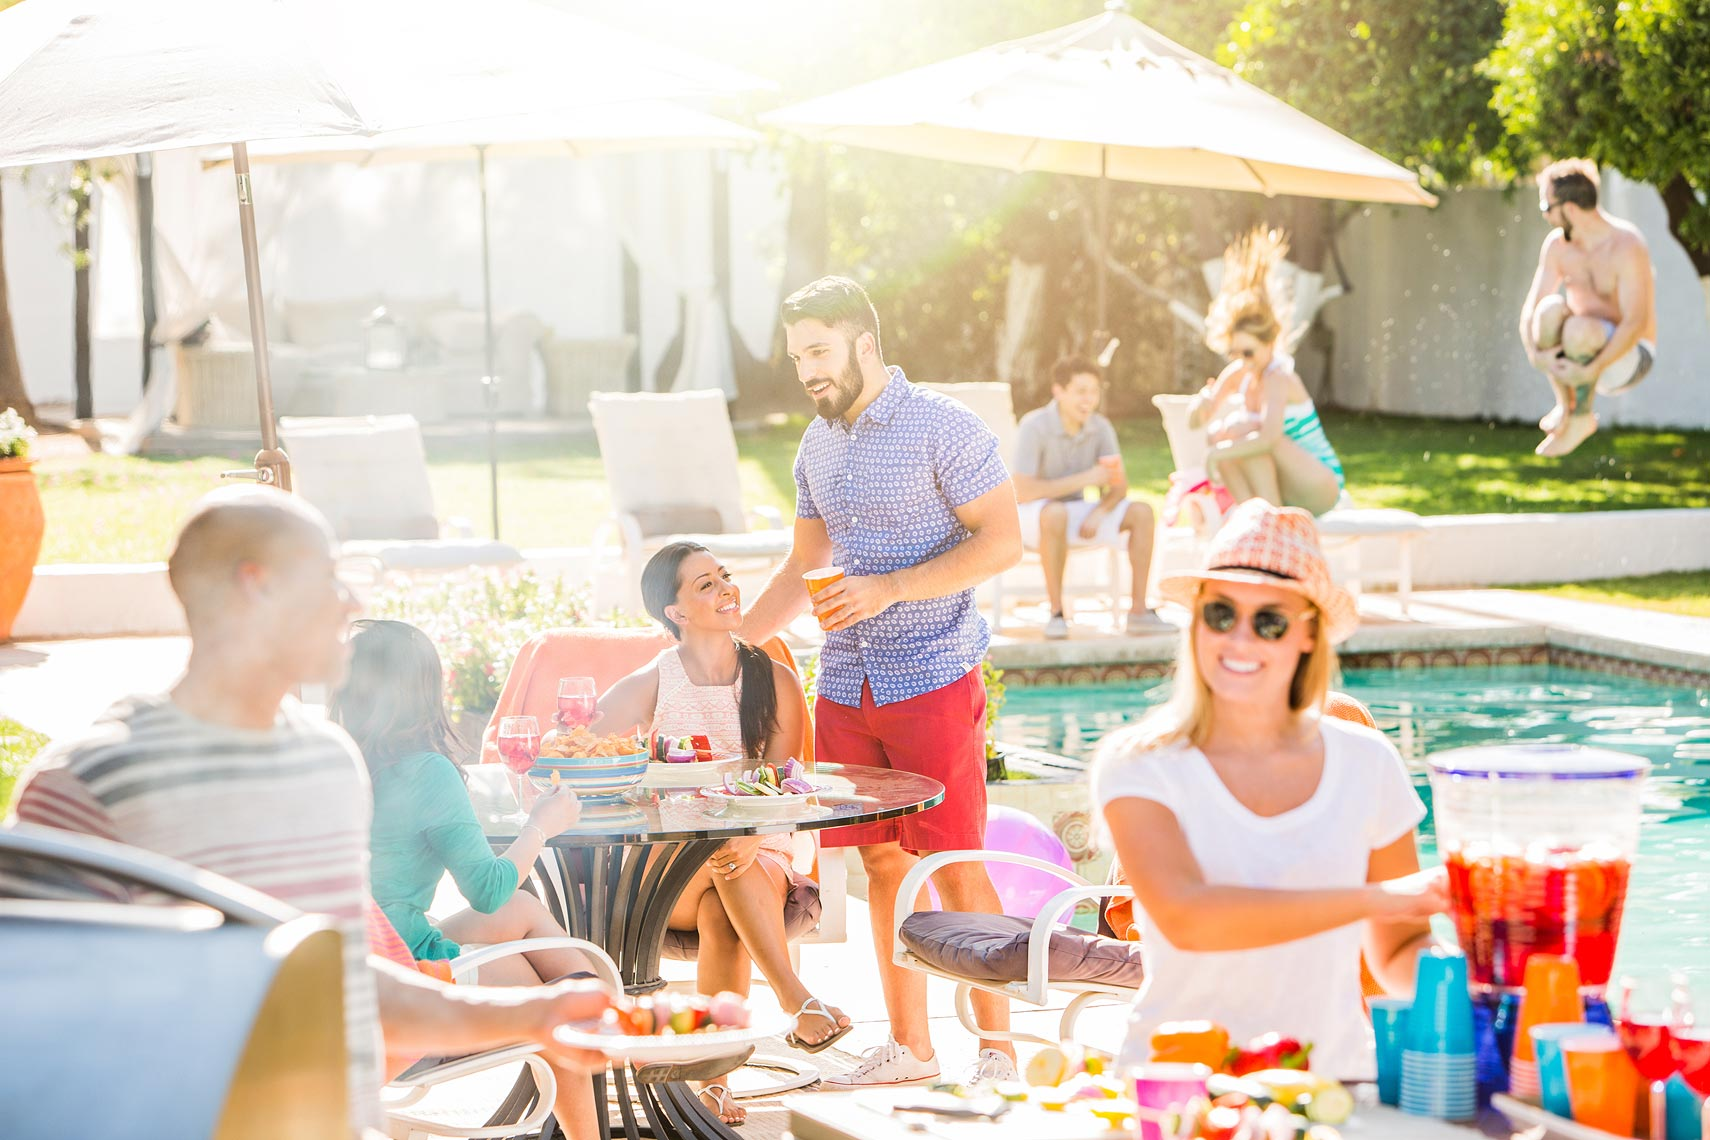 Friends laughing and eating at a backyard pool party | OneAZ | John Fedele Lifestyle Photography